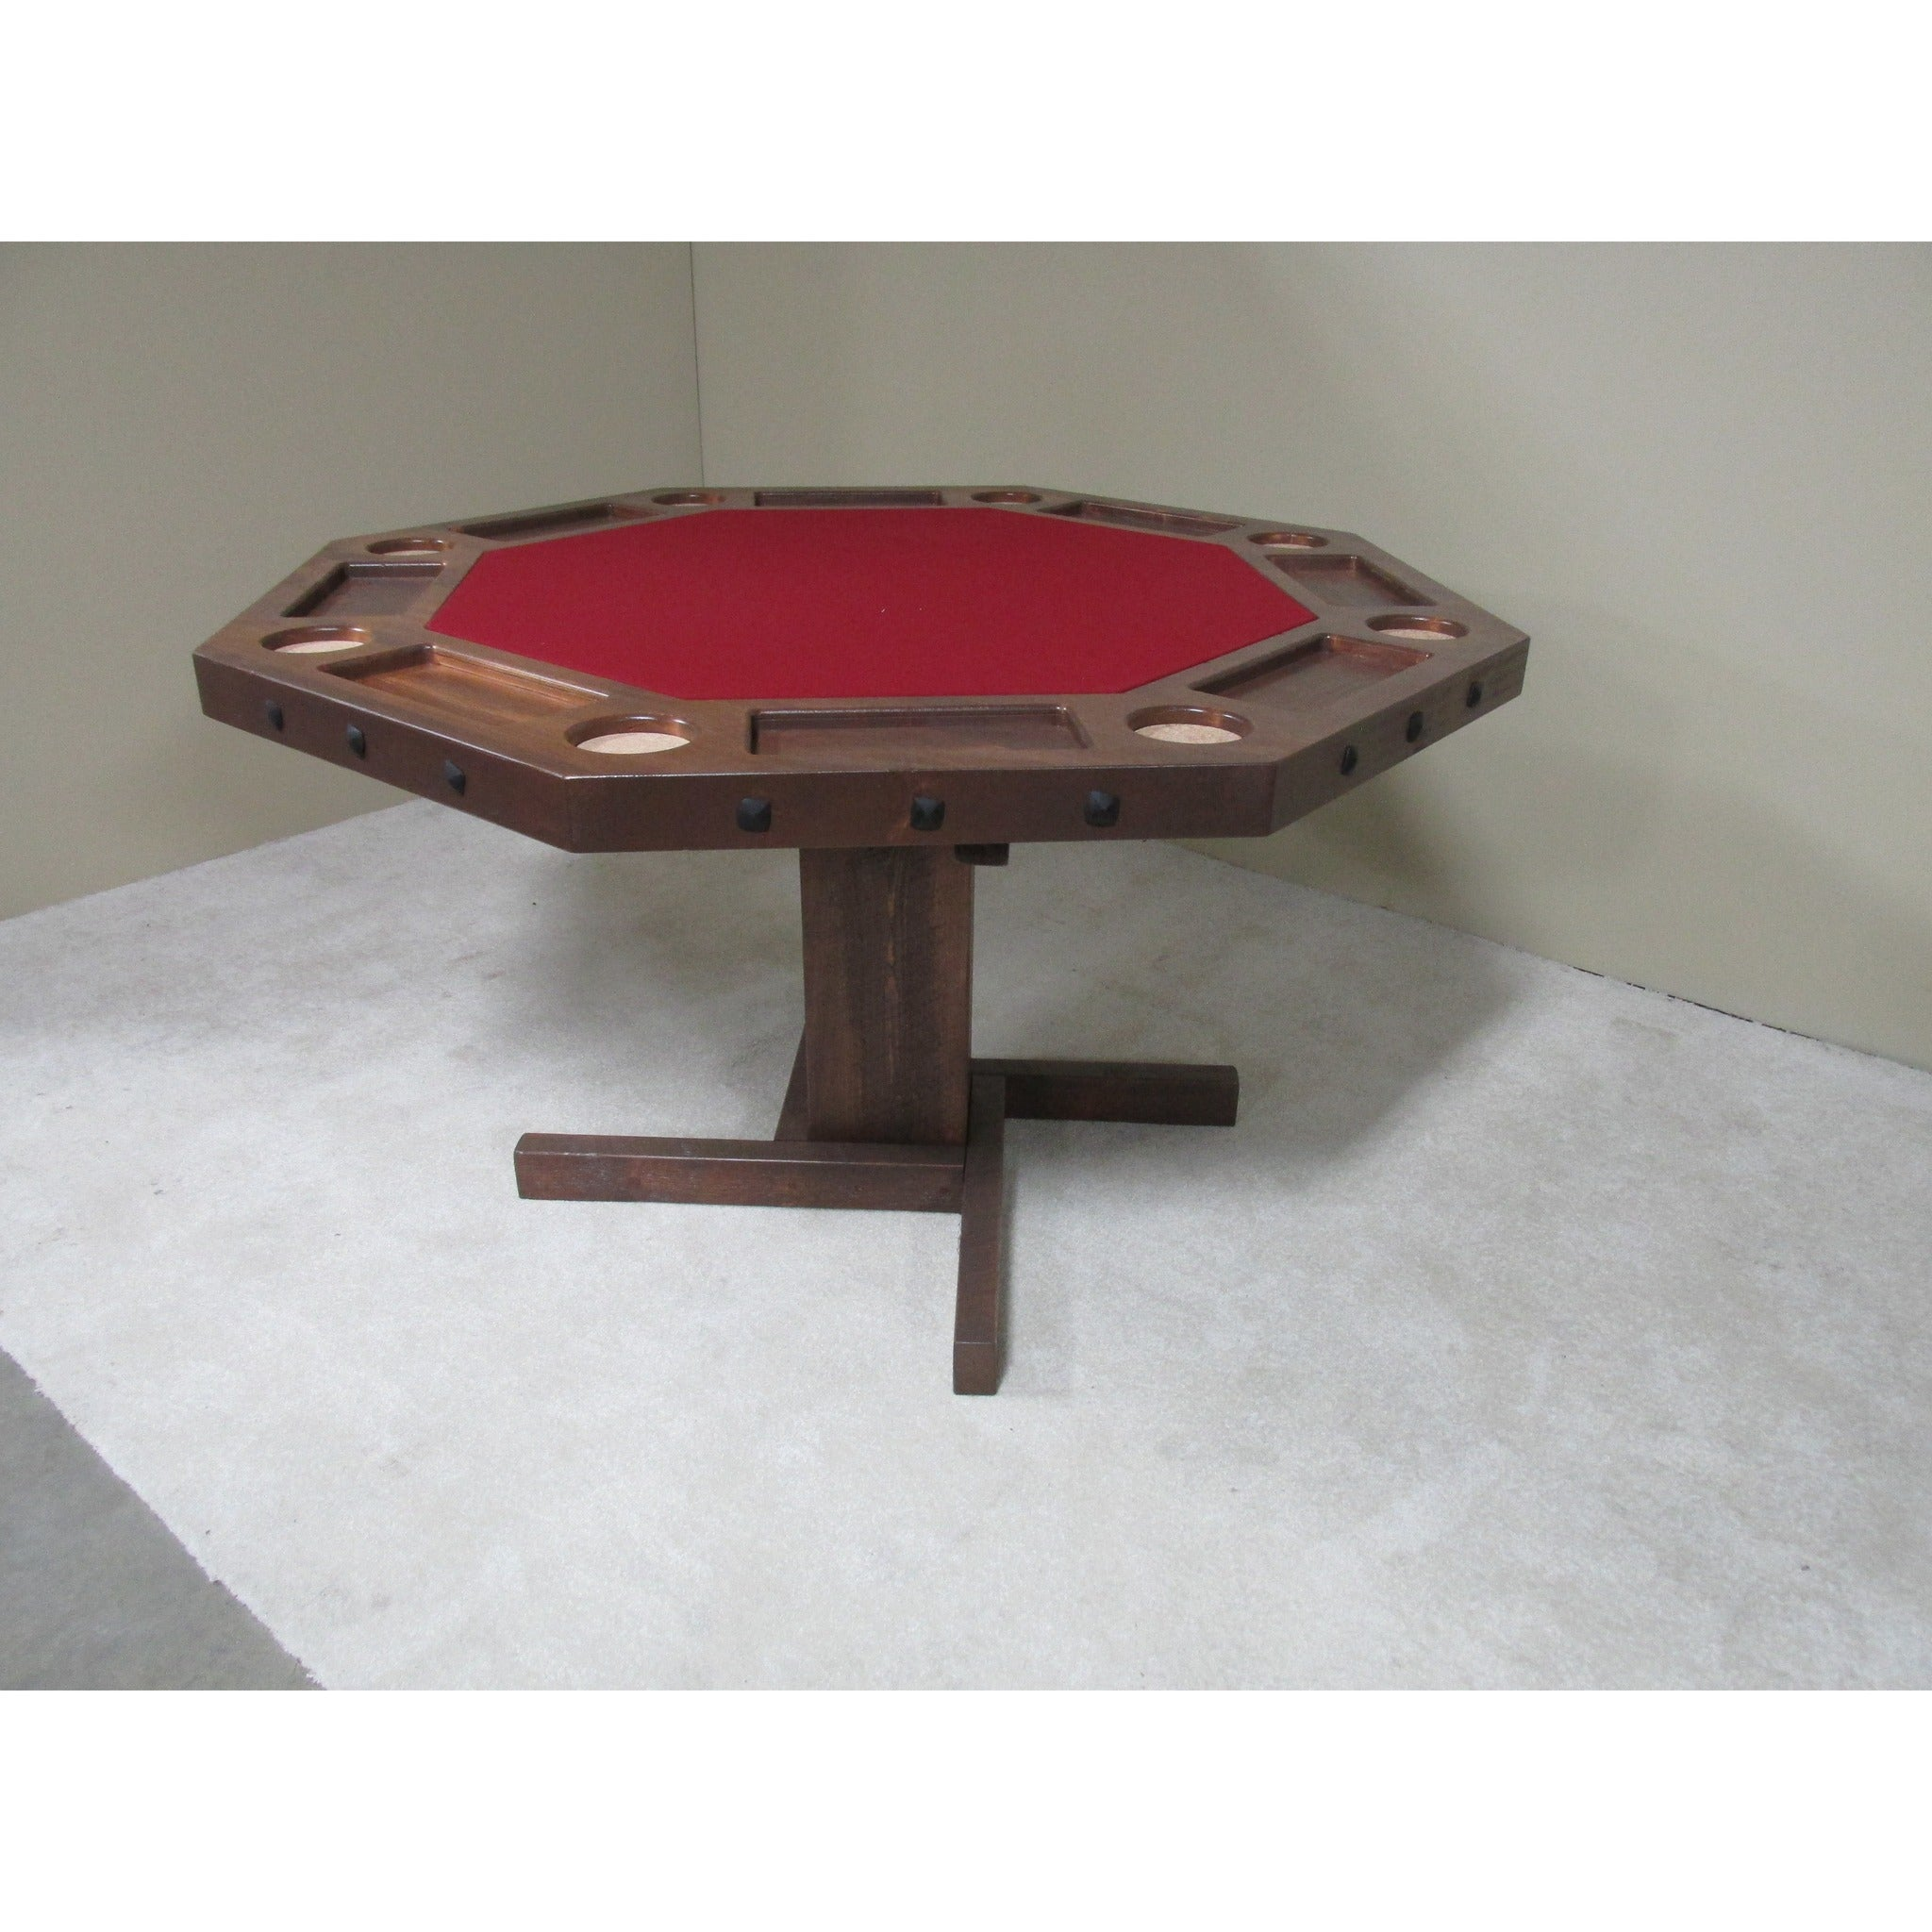 Beautiful Convertible Poker U0026 Dining Table By Viking Log Furniture   AMERICANA POKER  TABLES